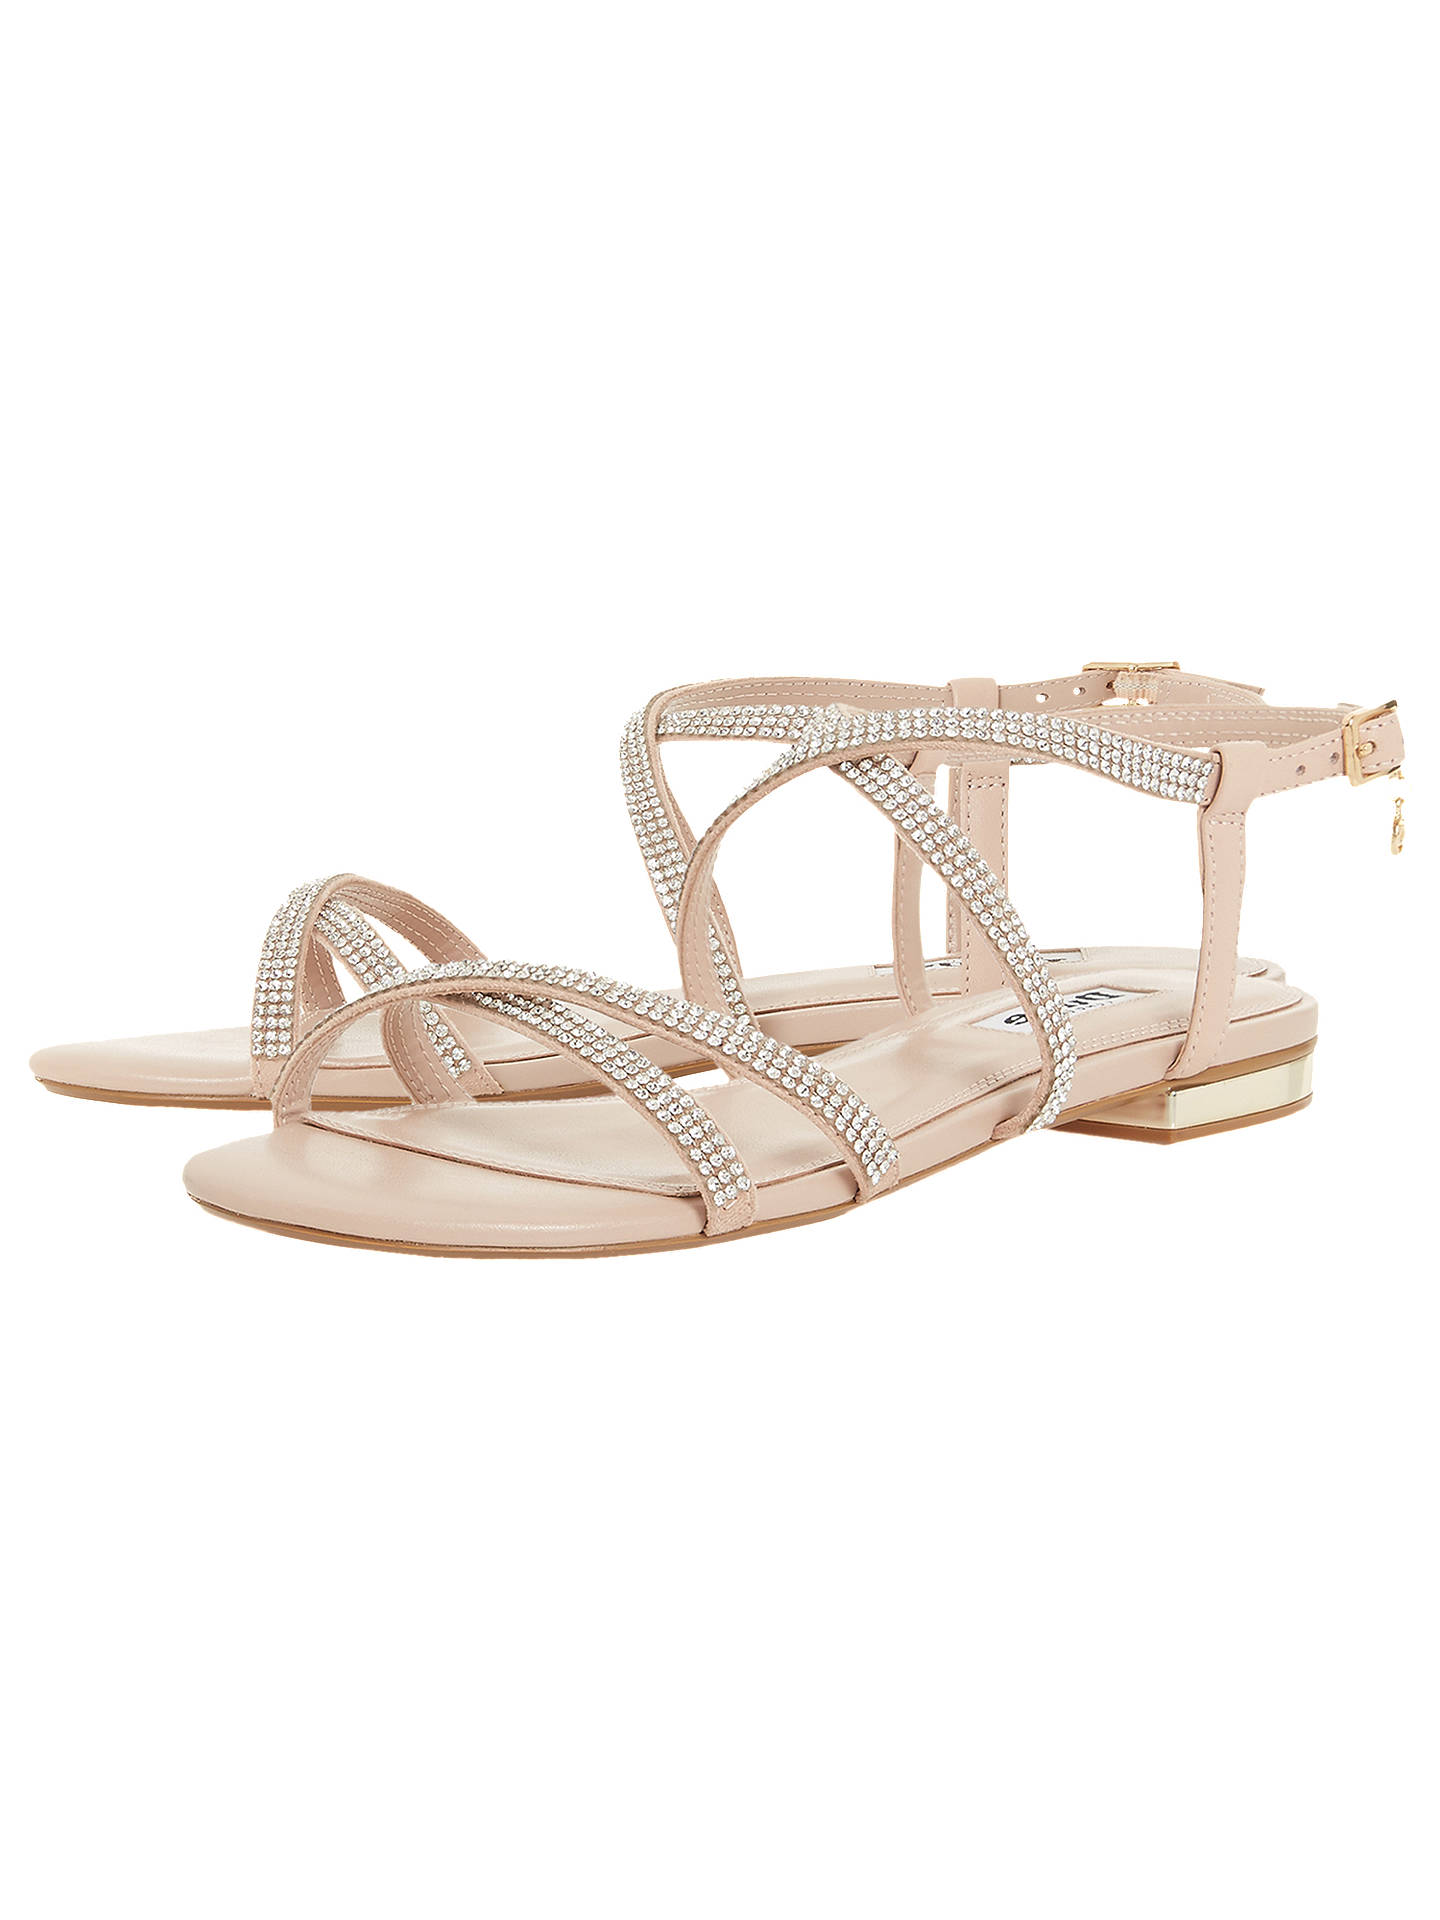 a525cf8e5256 Dune Neve Cross Strap Embellished Sandals at John Lewis   Partners